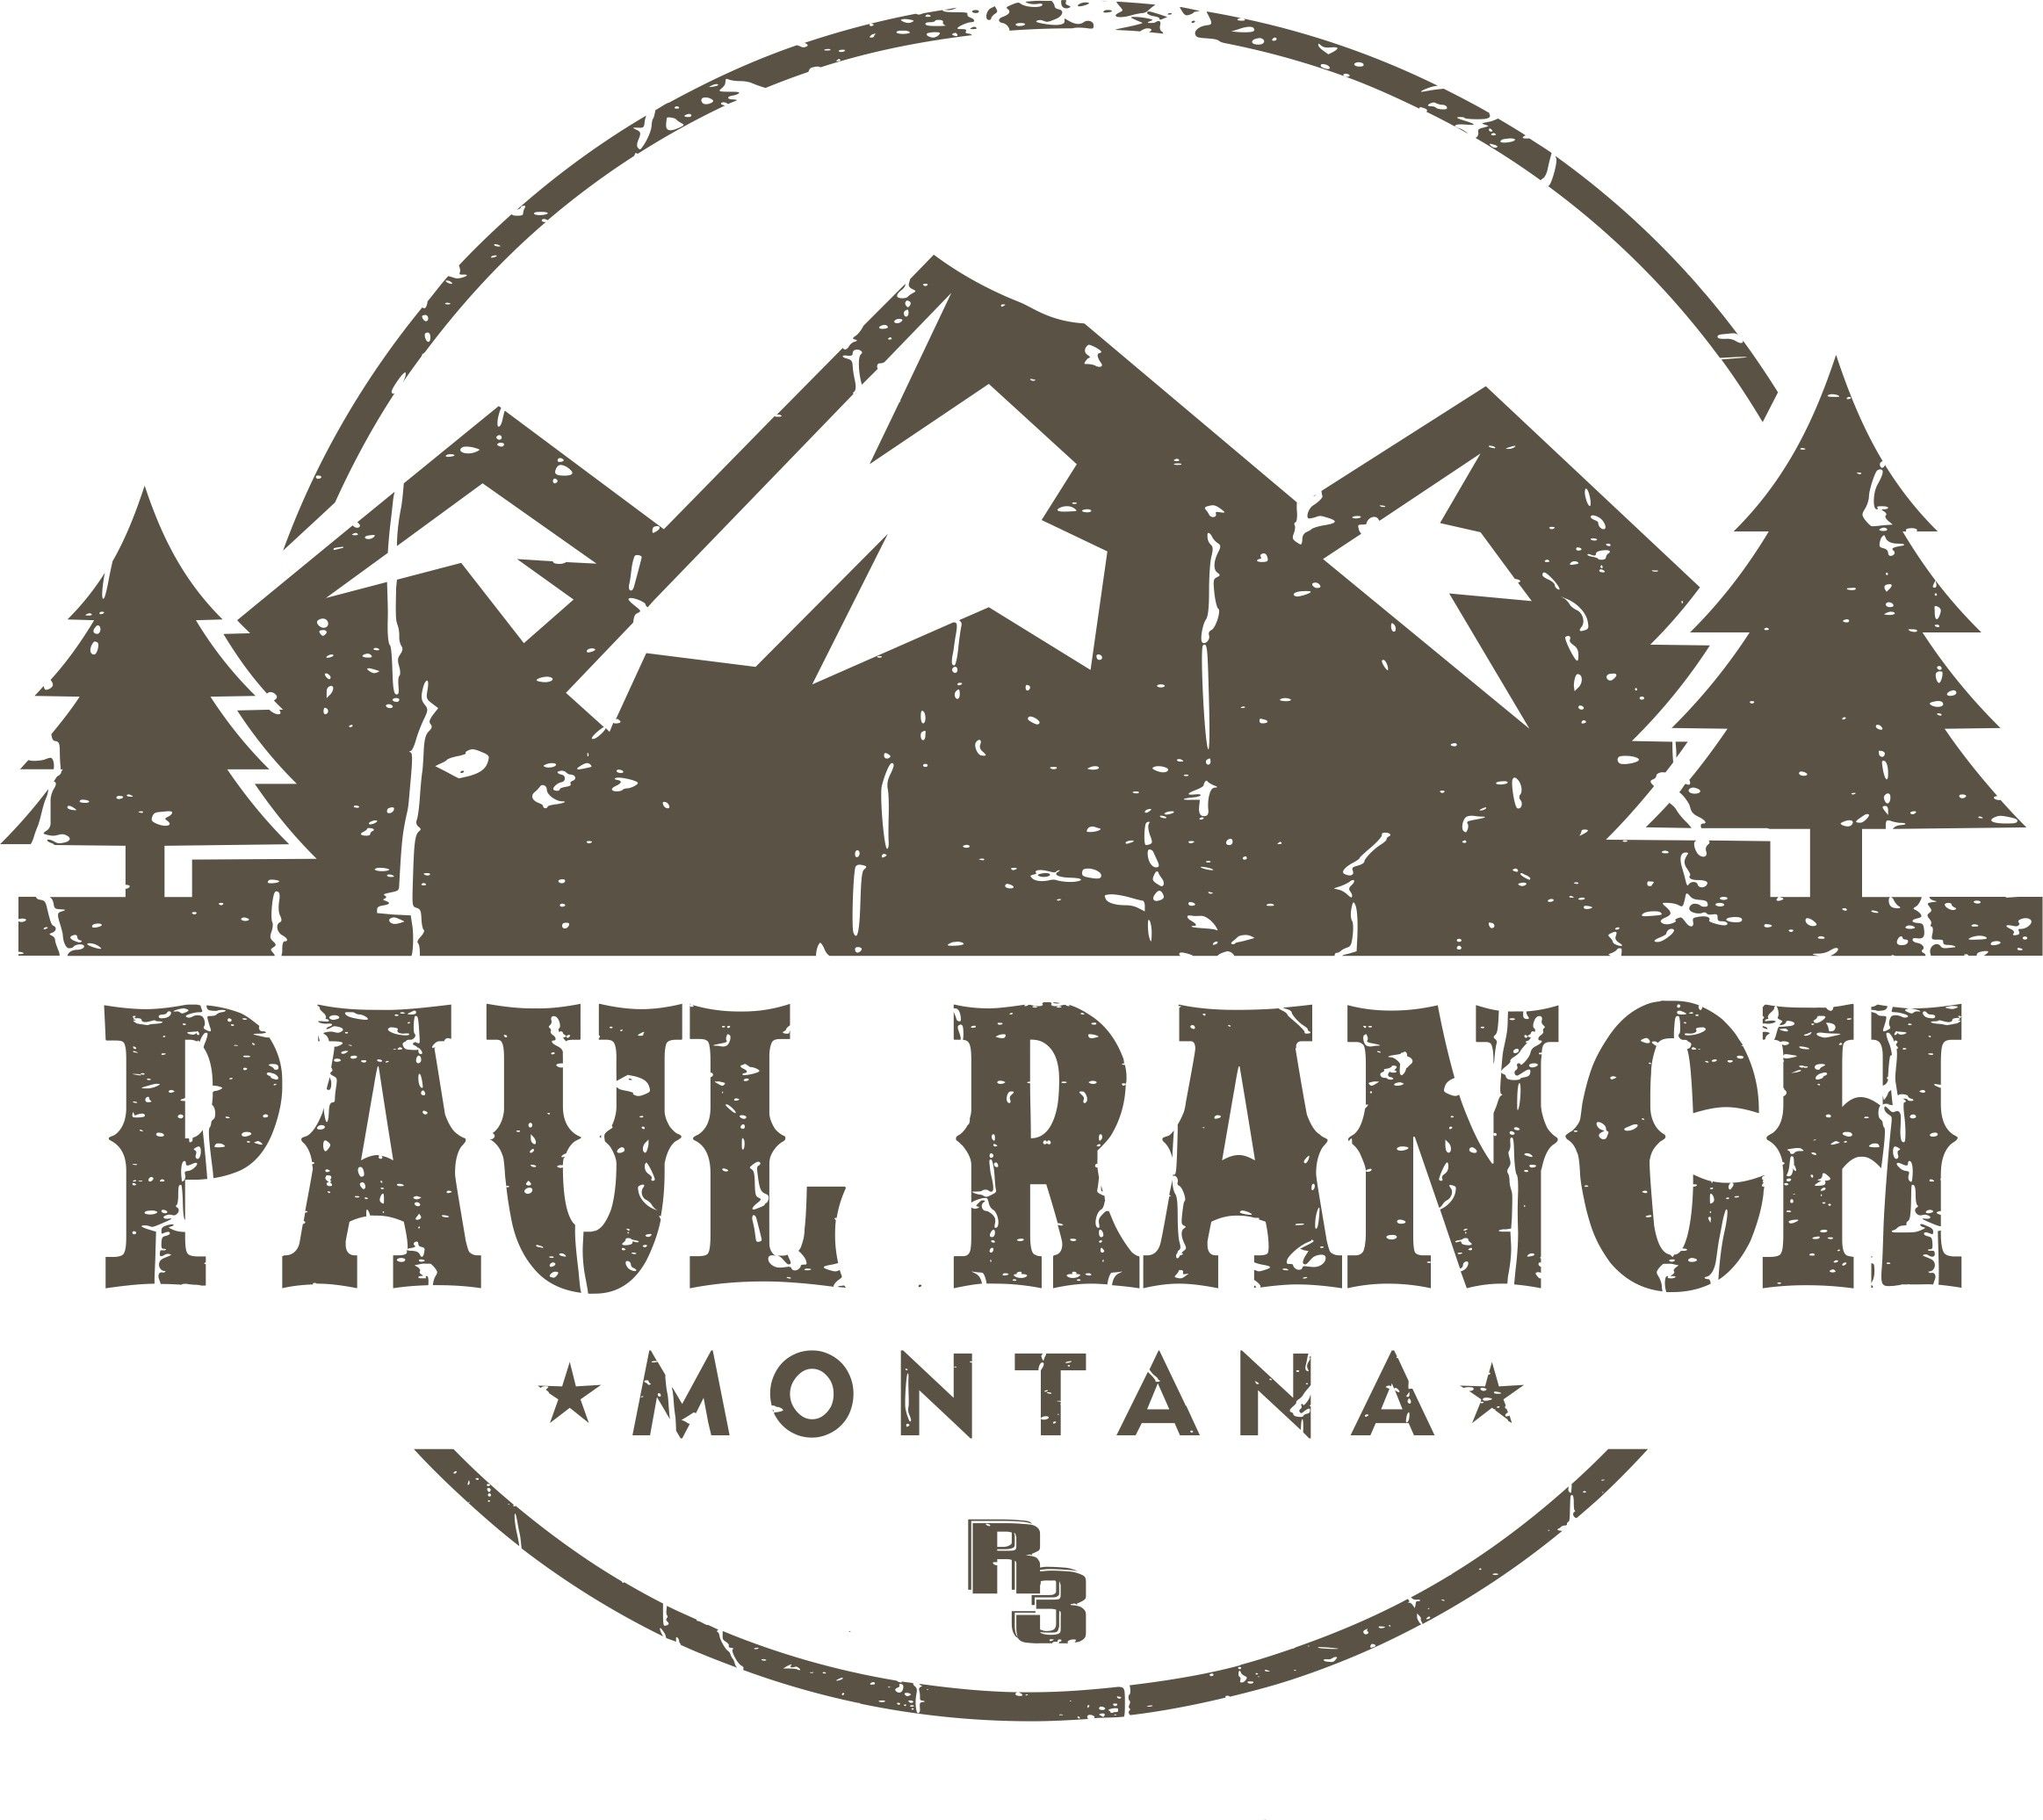 Create a logo for advertising and merchandising Paul Ranch Montana